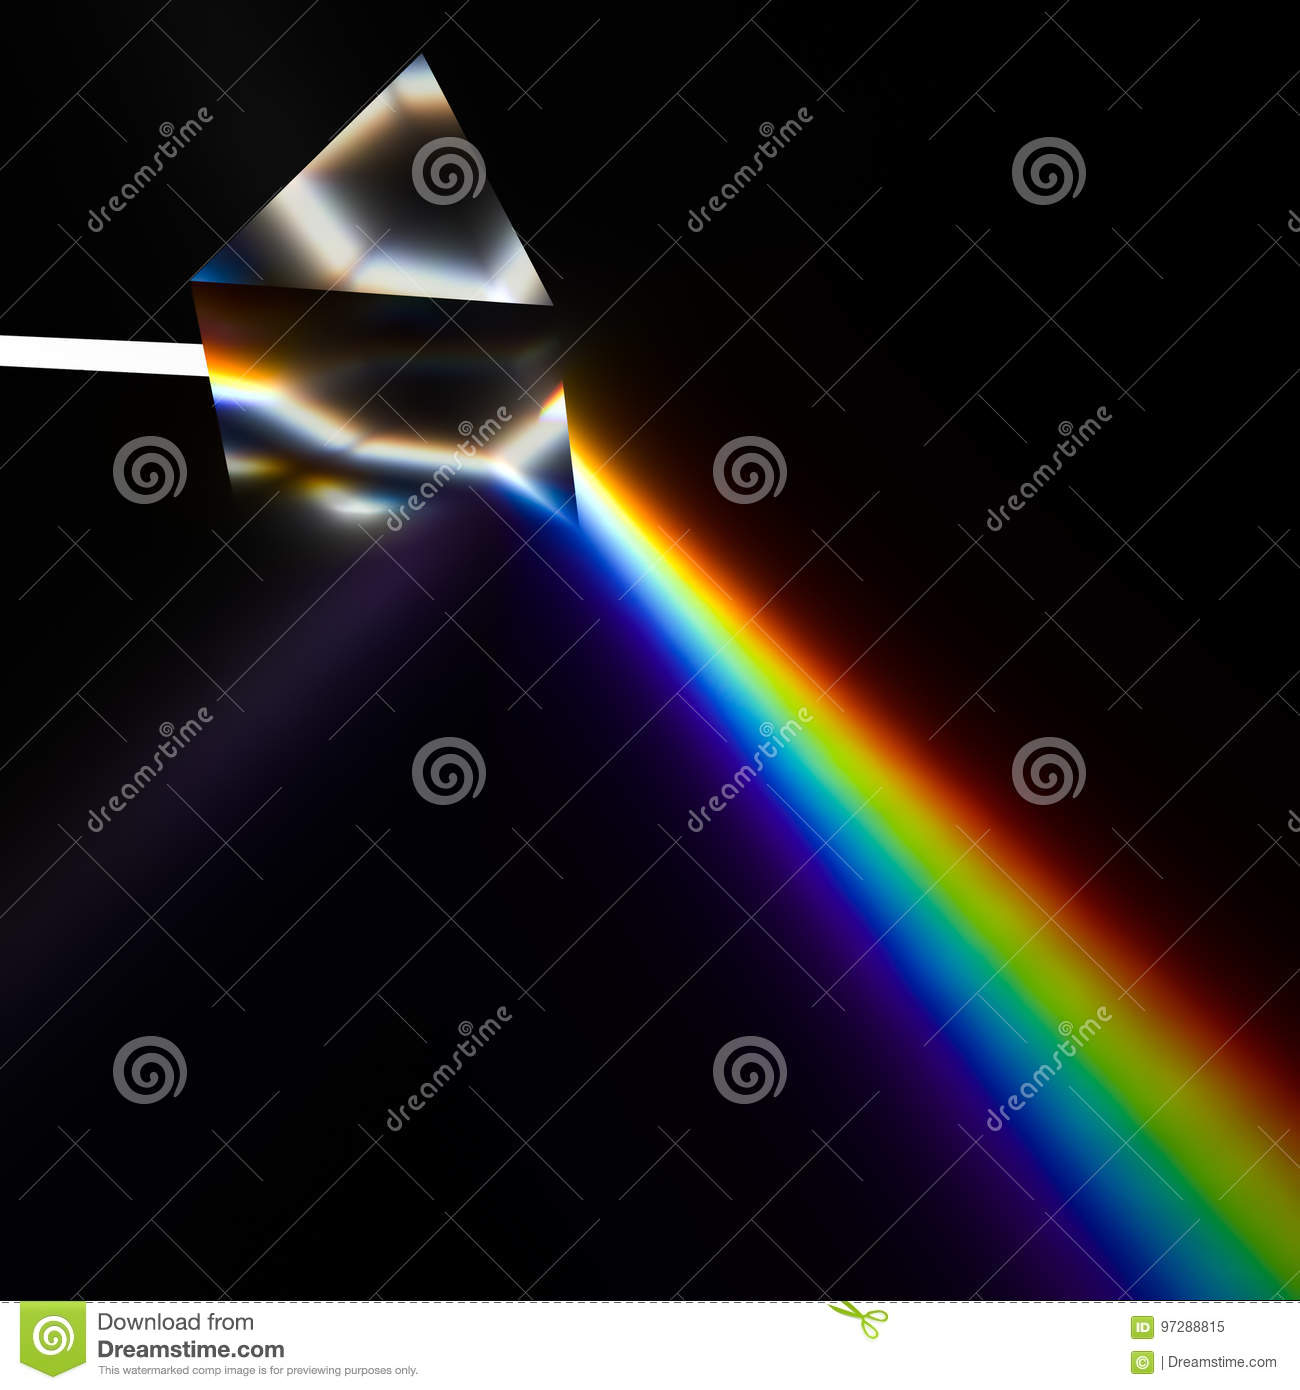 Spectroscopy of light by prism